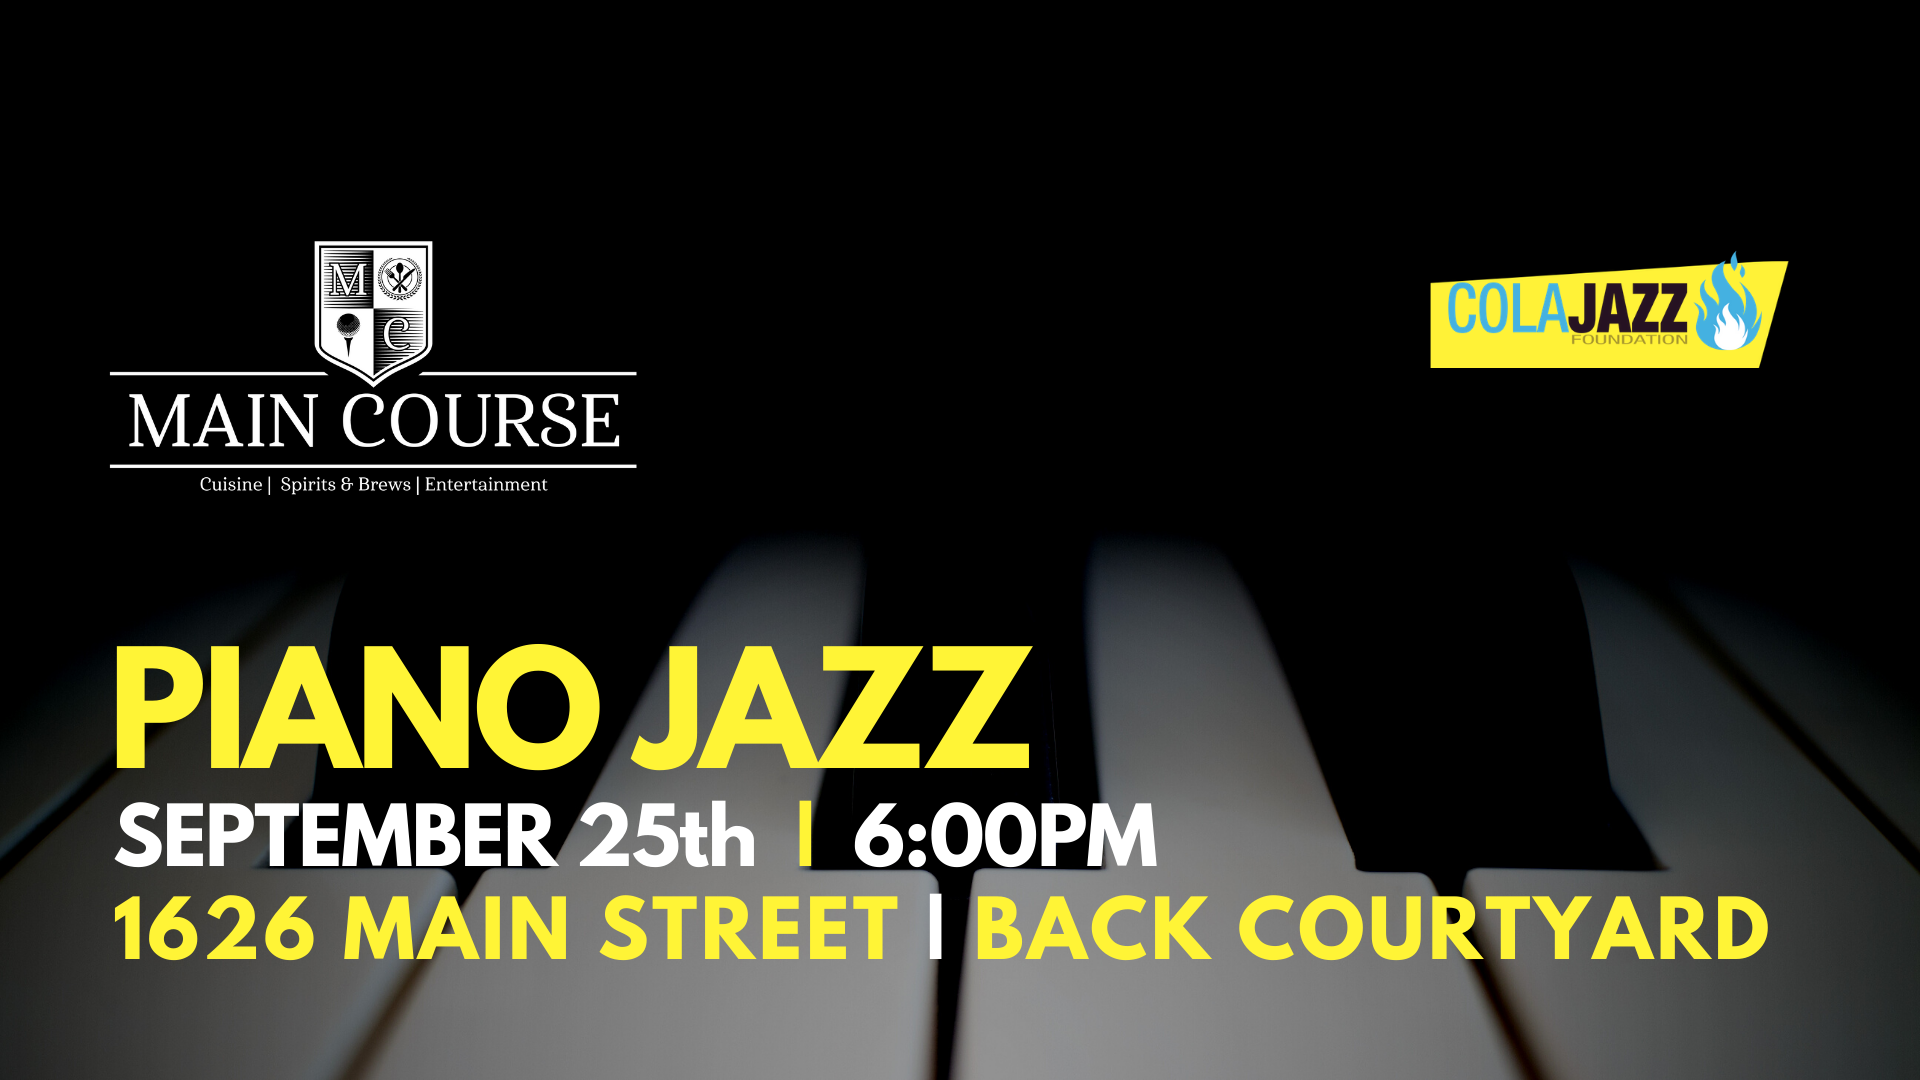 Pianist Morgan McGee continues to bring jazz alive at the Main Course's back courtyard on September 25, the last Friday of this month. Safe, outdoors with great food and beverages. Enjoy!